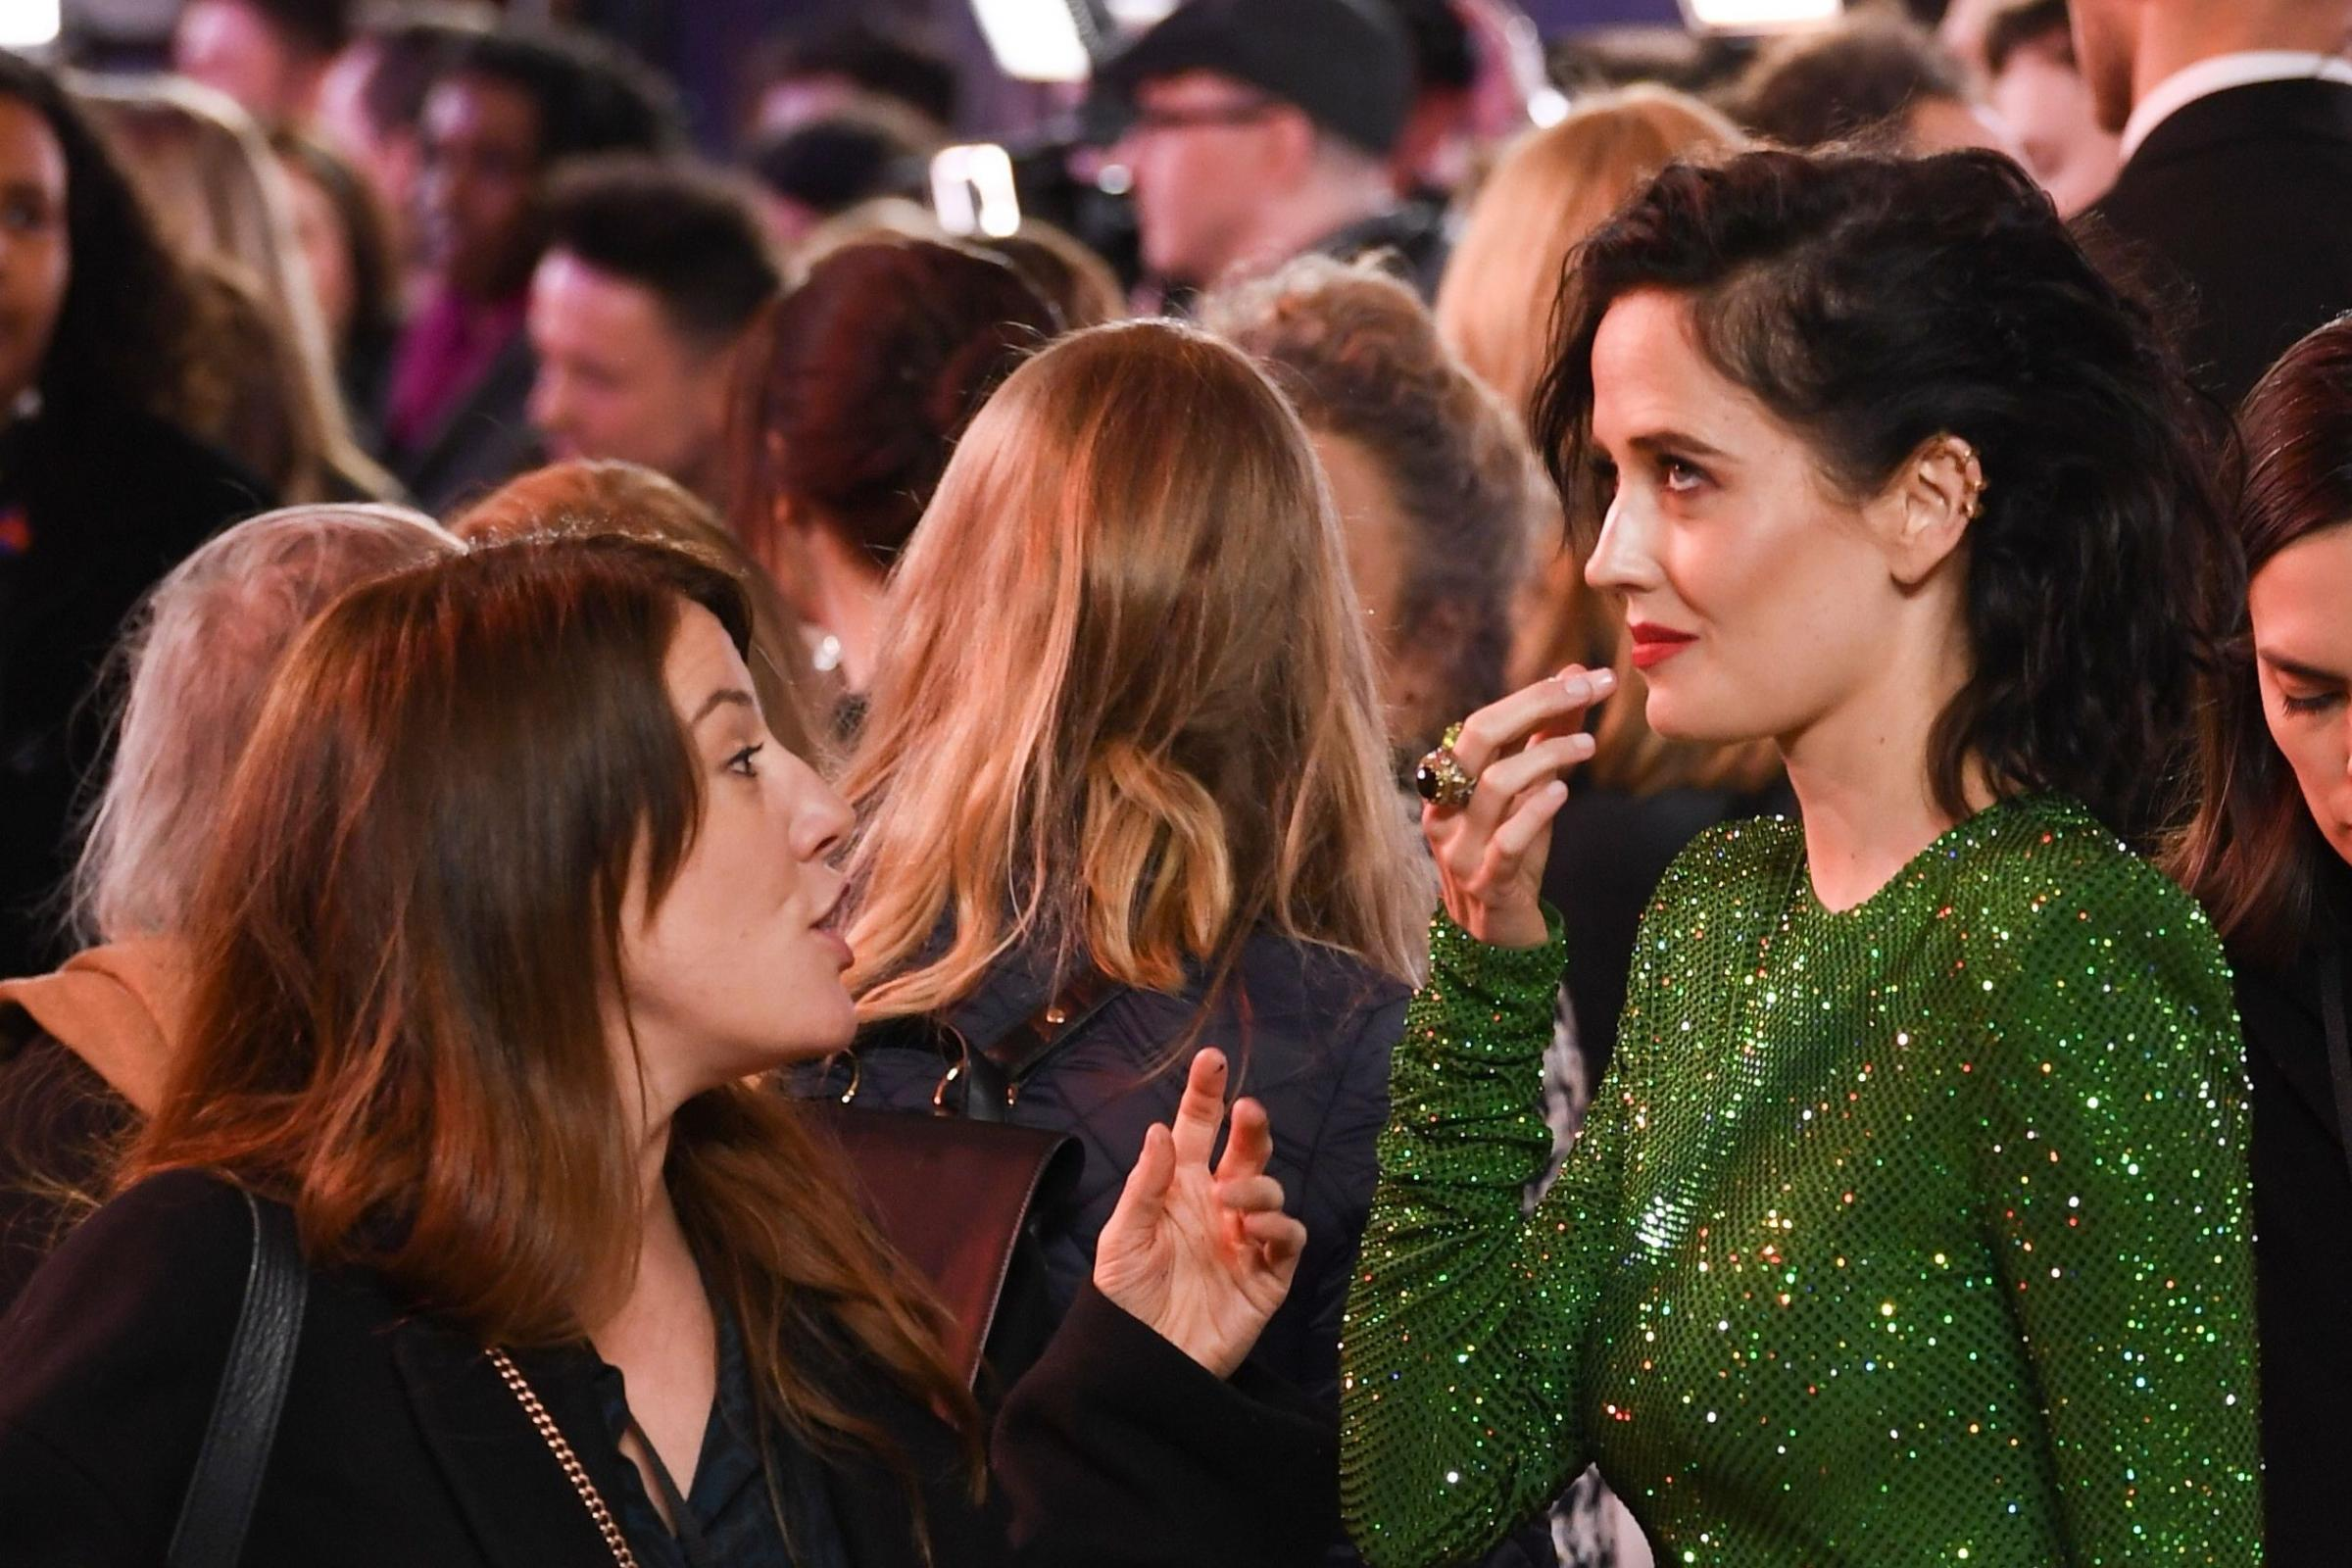 Eva Green takes chewing gum out of her mouth at the Dumbo film premiere